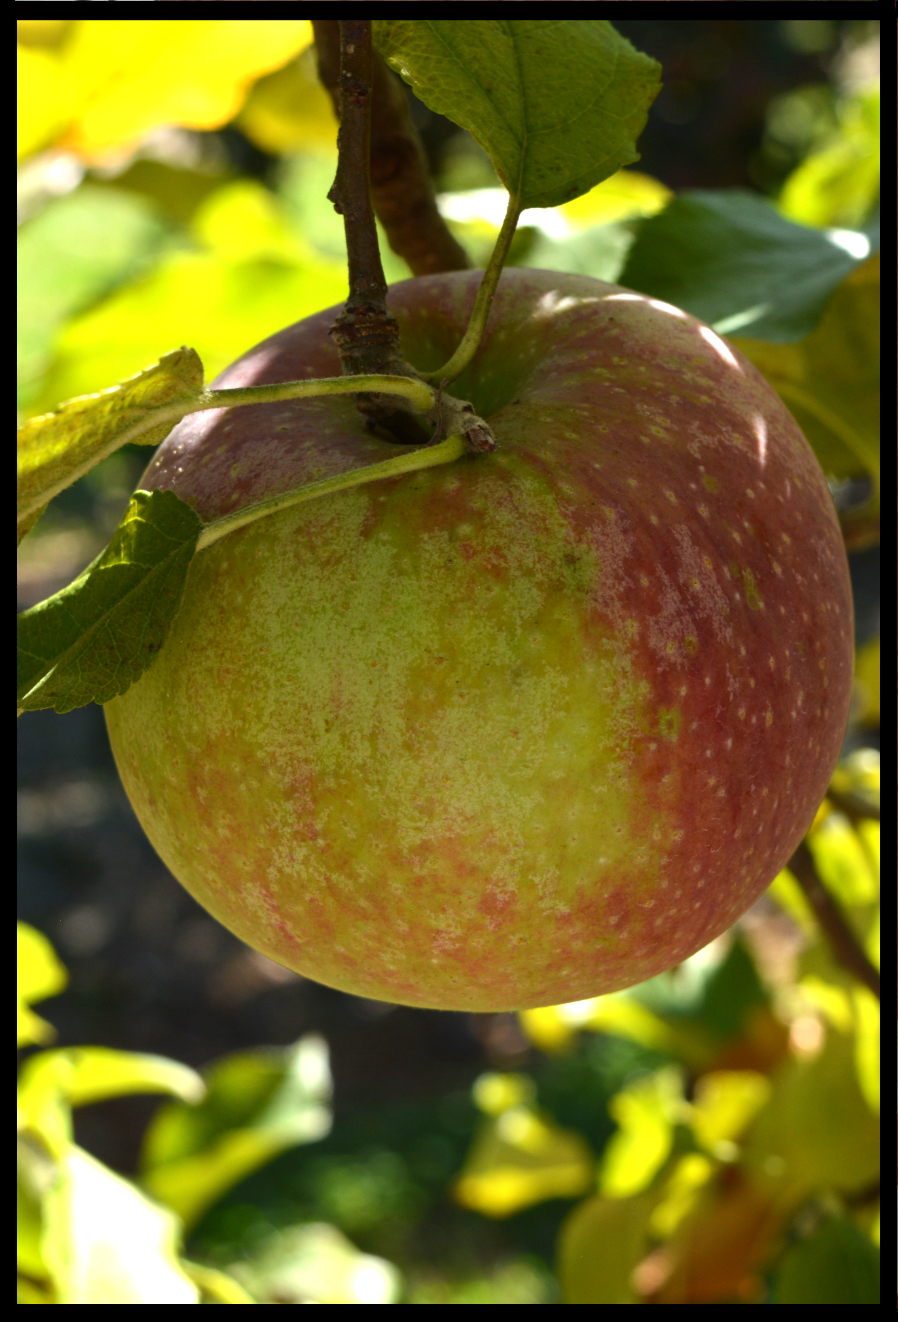 yellow apple nearly entirely covered with red streaks and blush